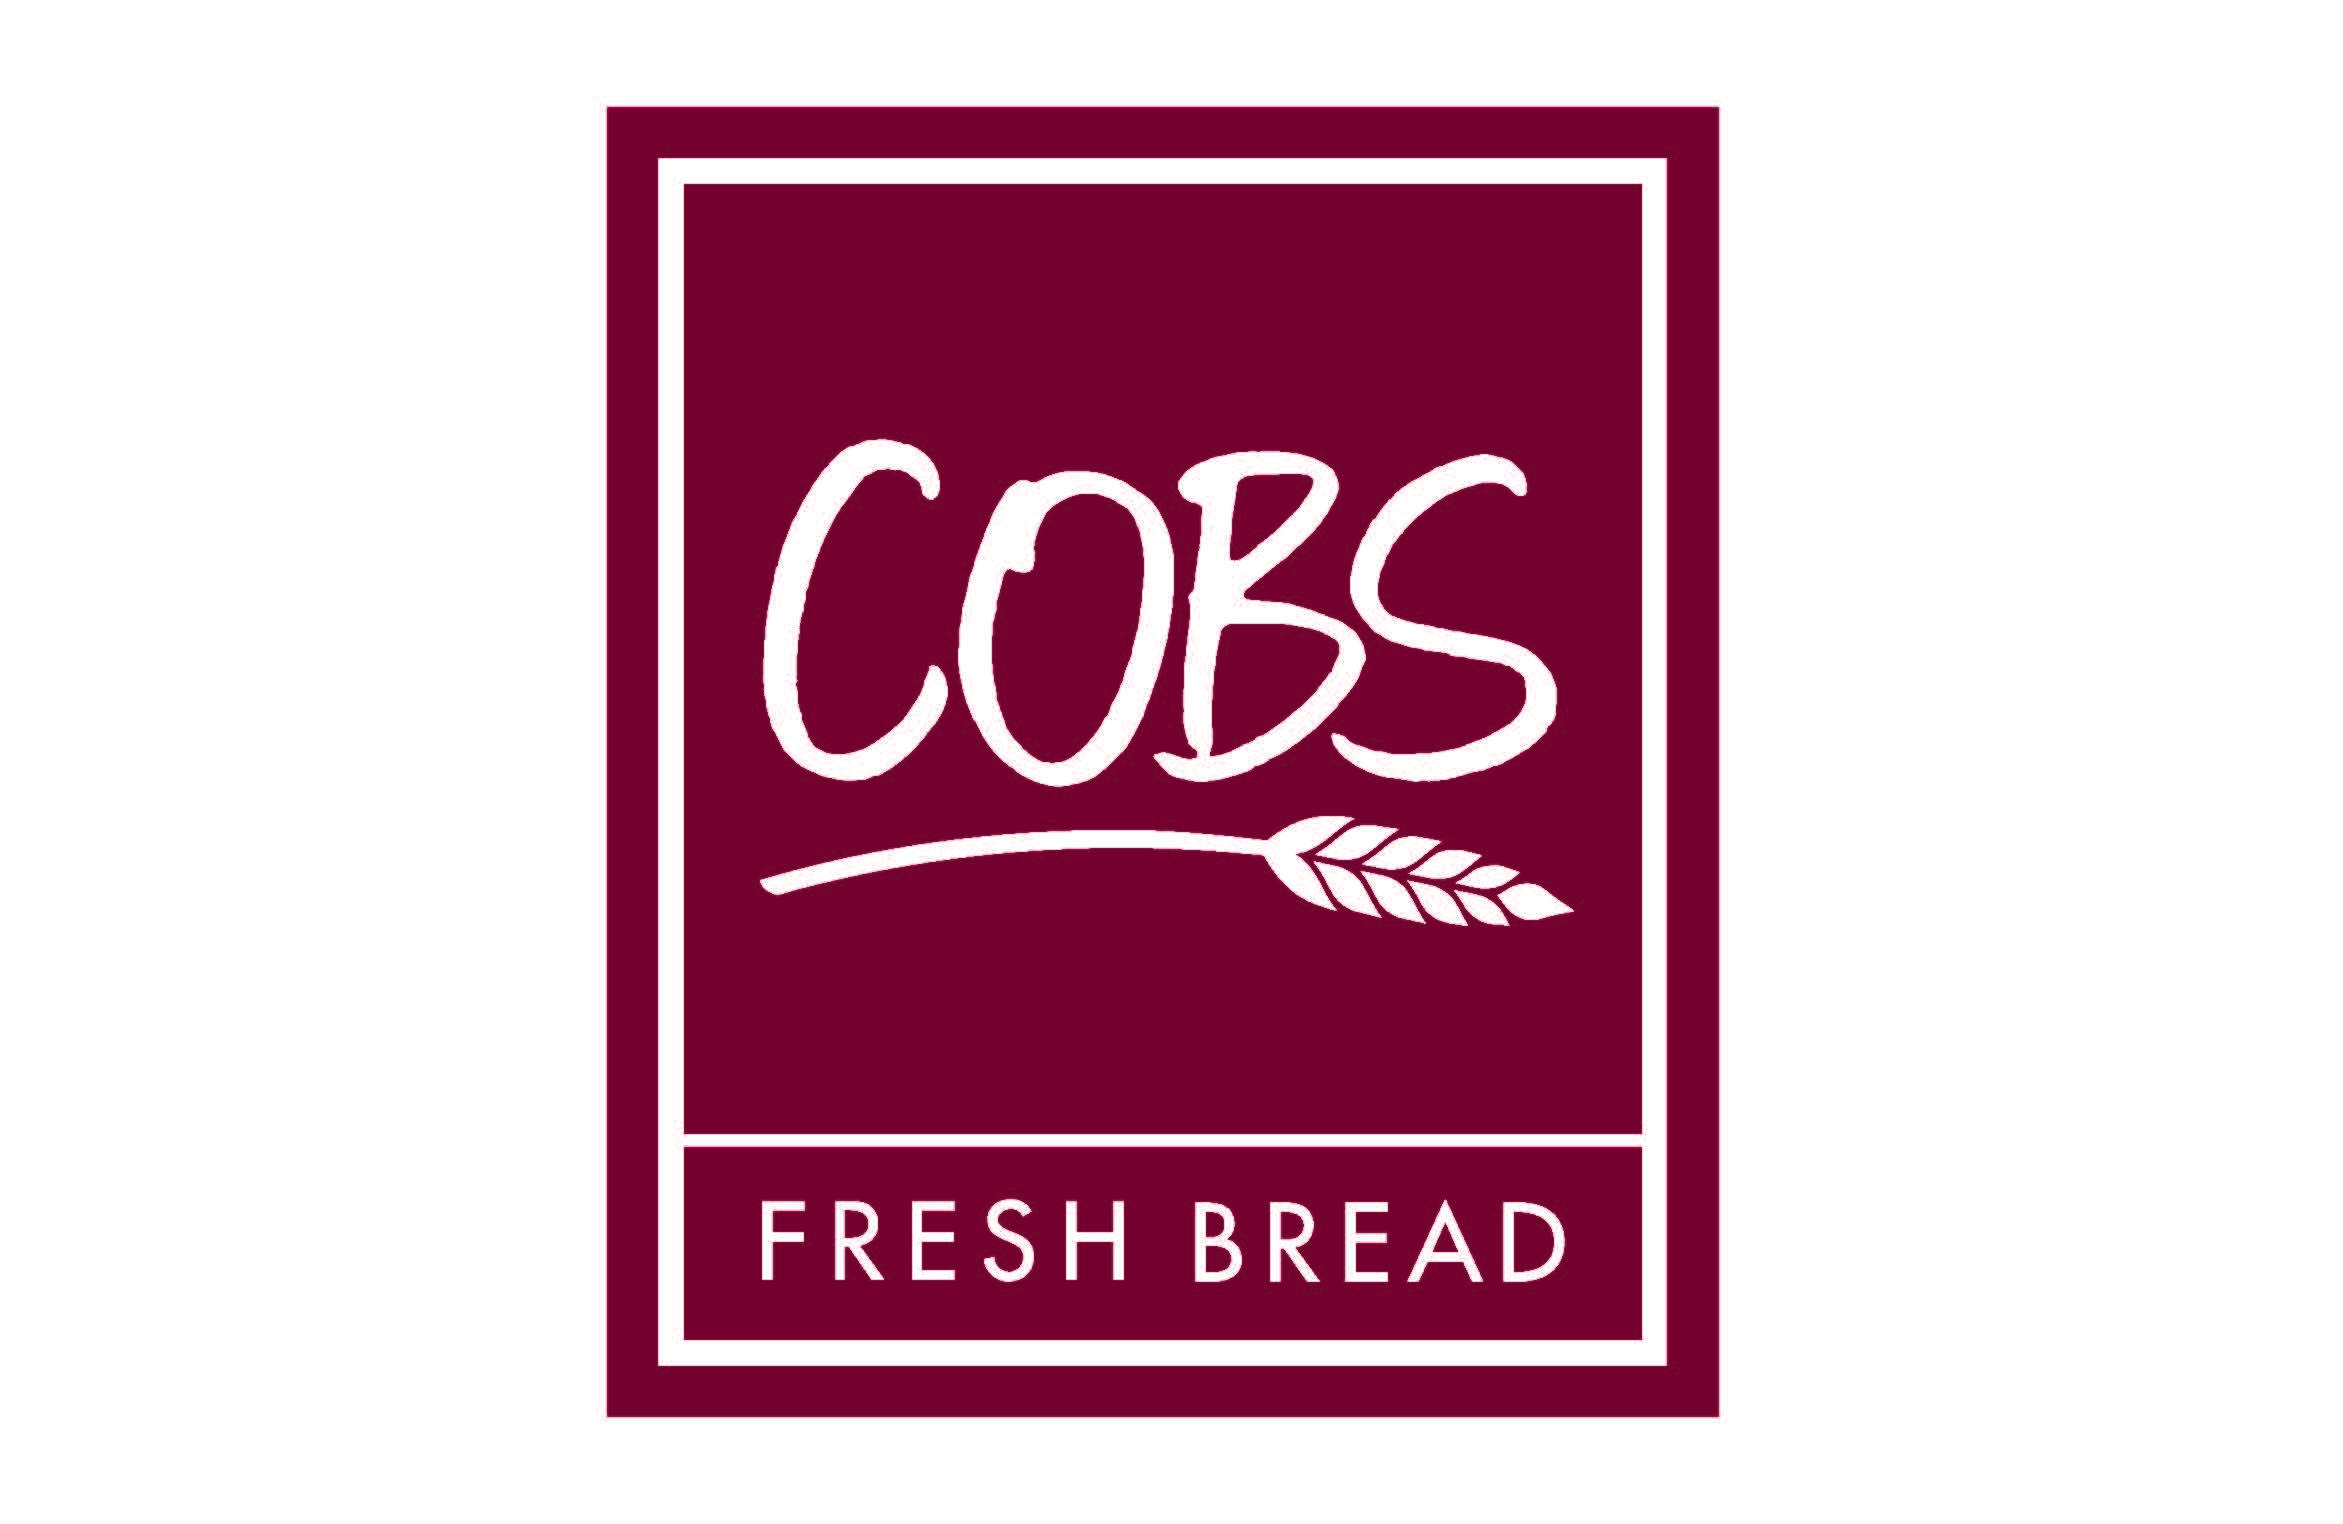 sponsored by cobs bread